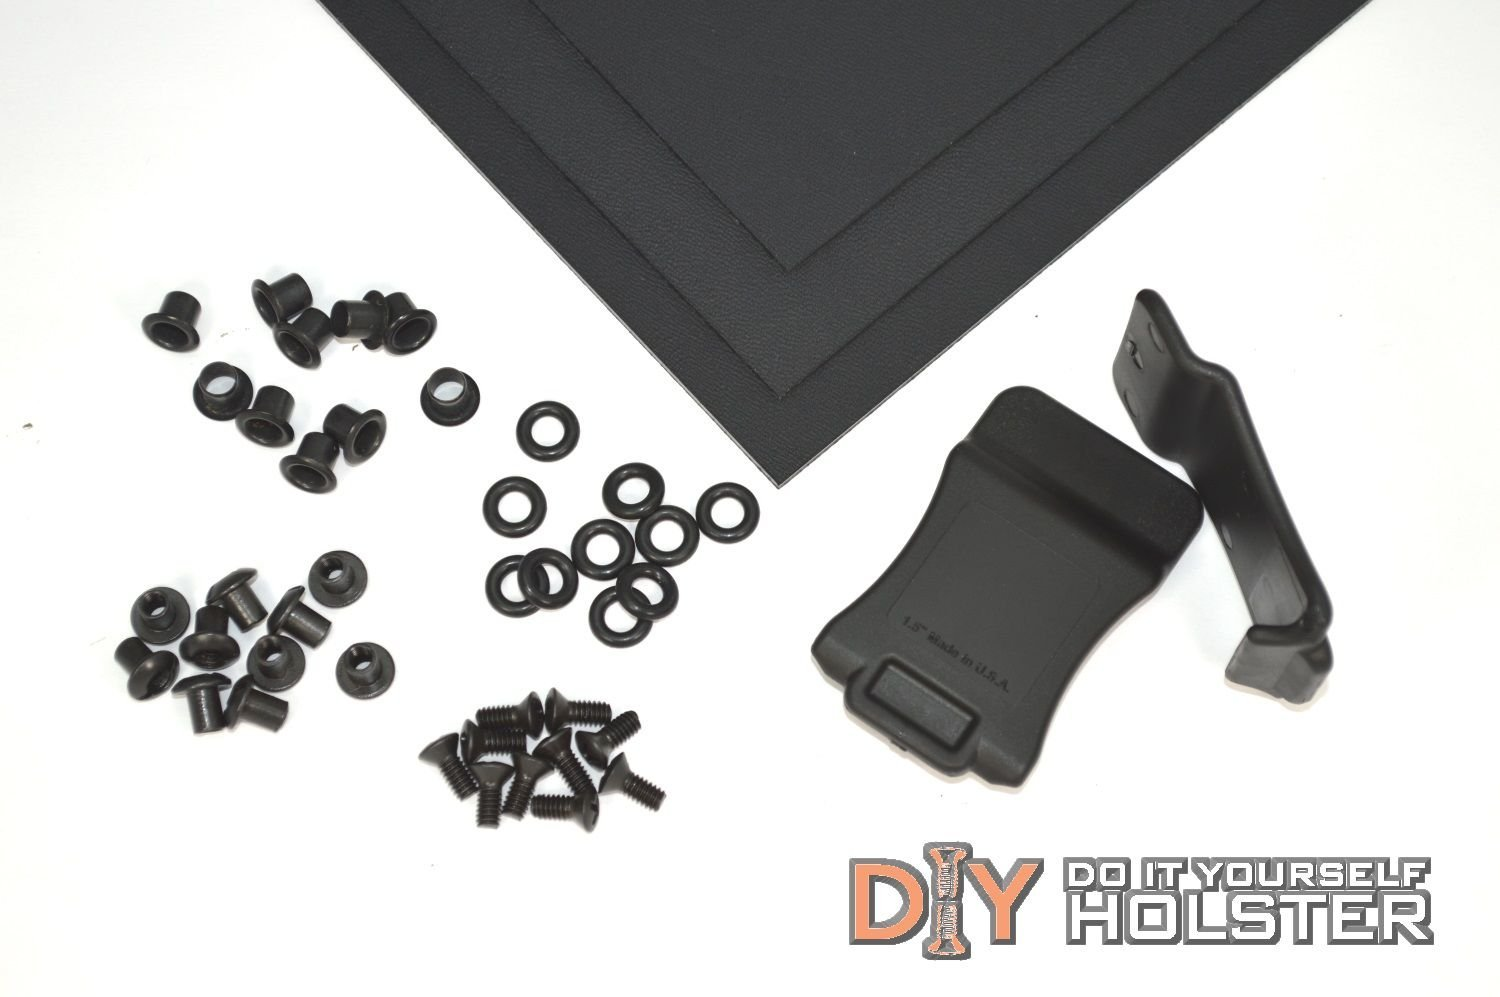 Kydex (Boltaron) Holster DIY Kit w/ Quick Clips